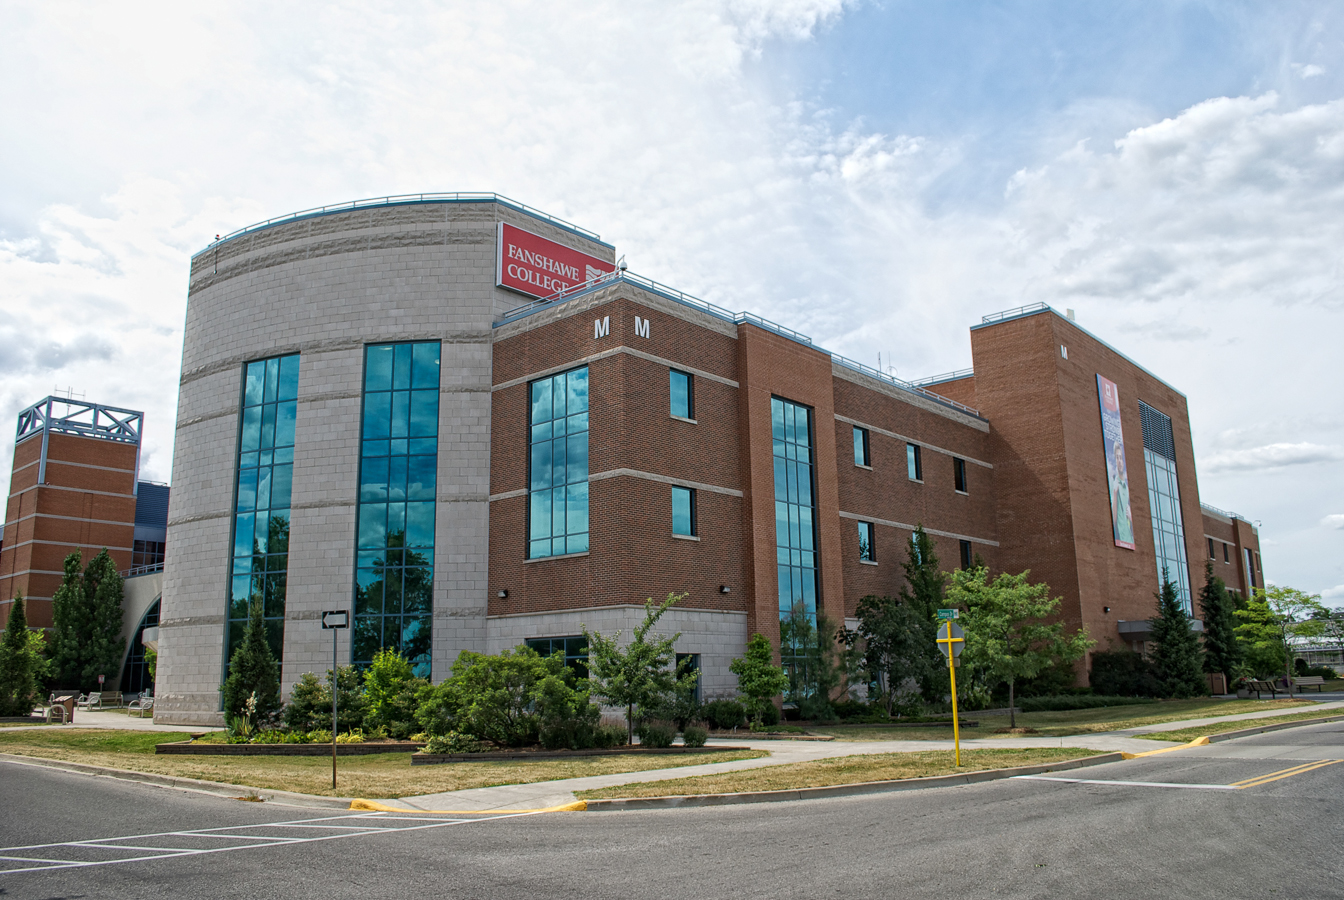 Fanshawe College – M Building